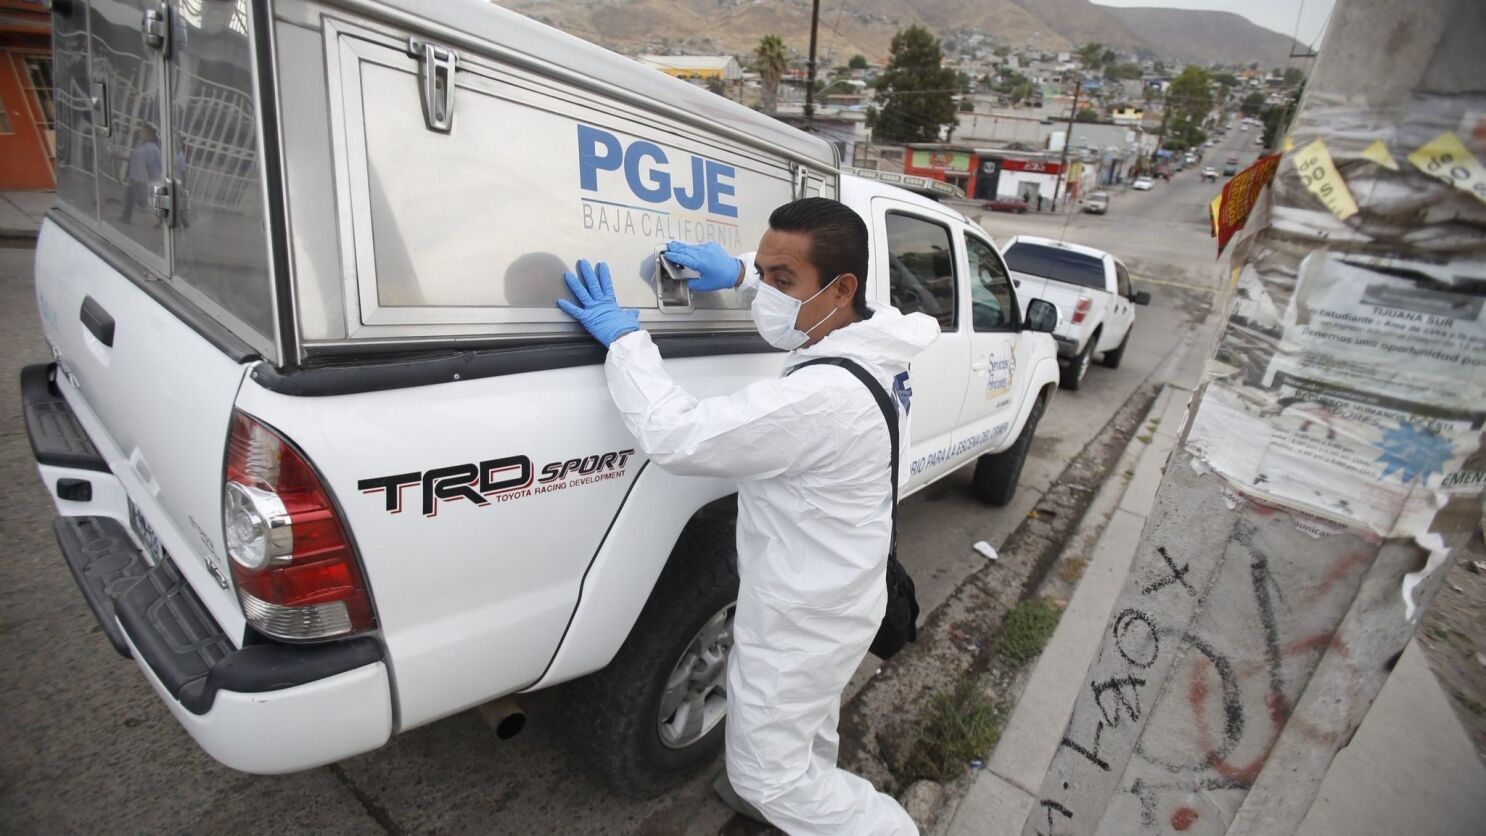 Rise of new cartel leading to more violence, USD study shows - The